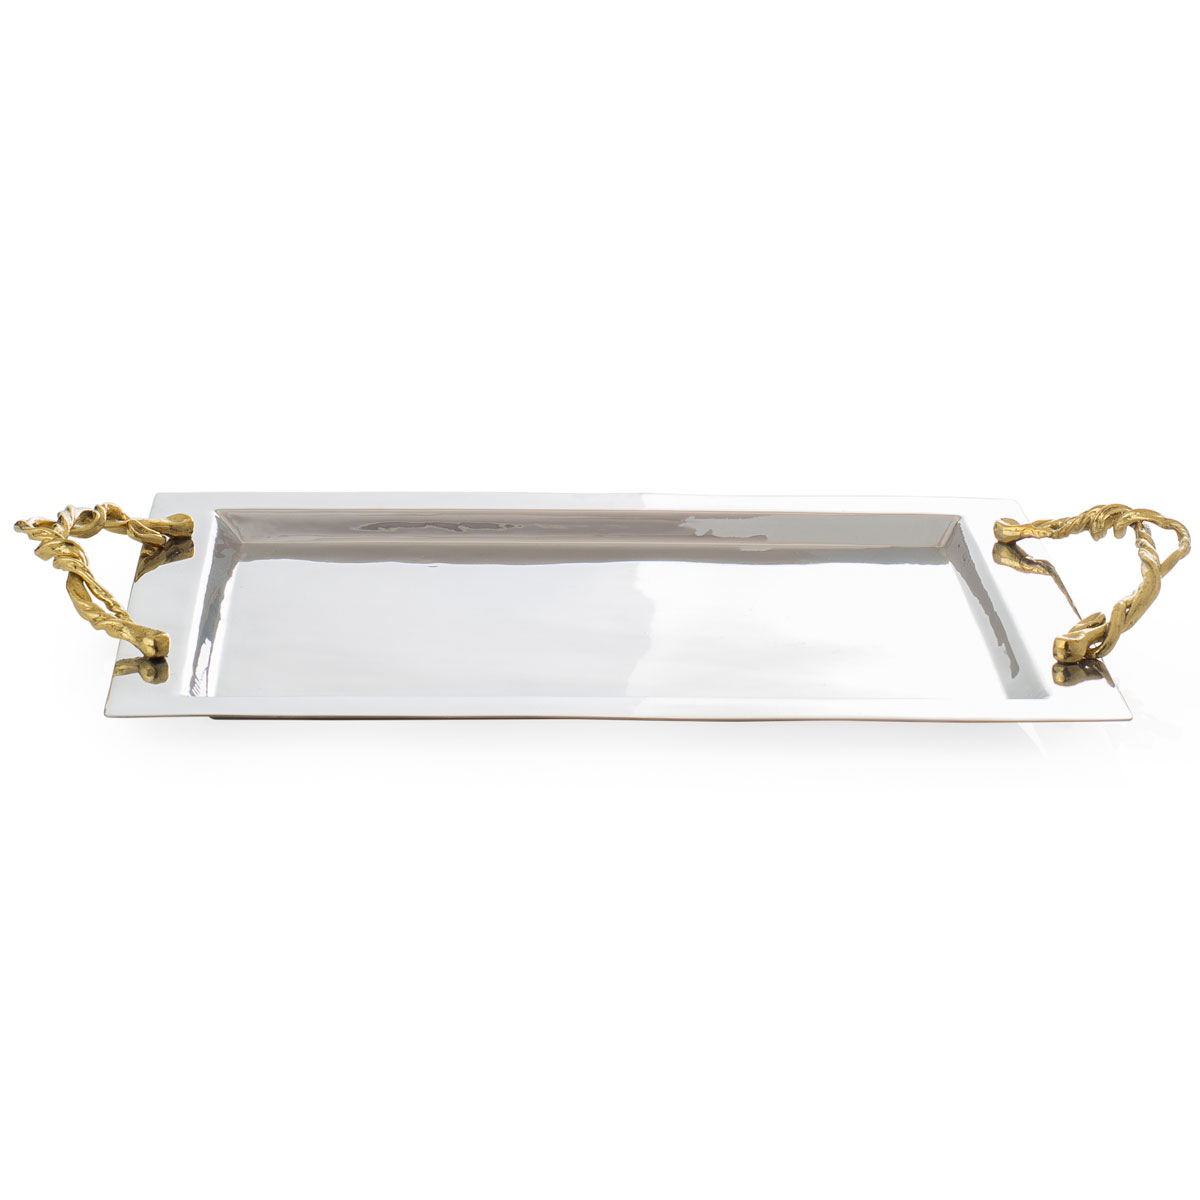 Michael Aram Wisteria Gold Serving Tray